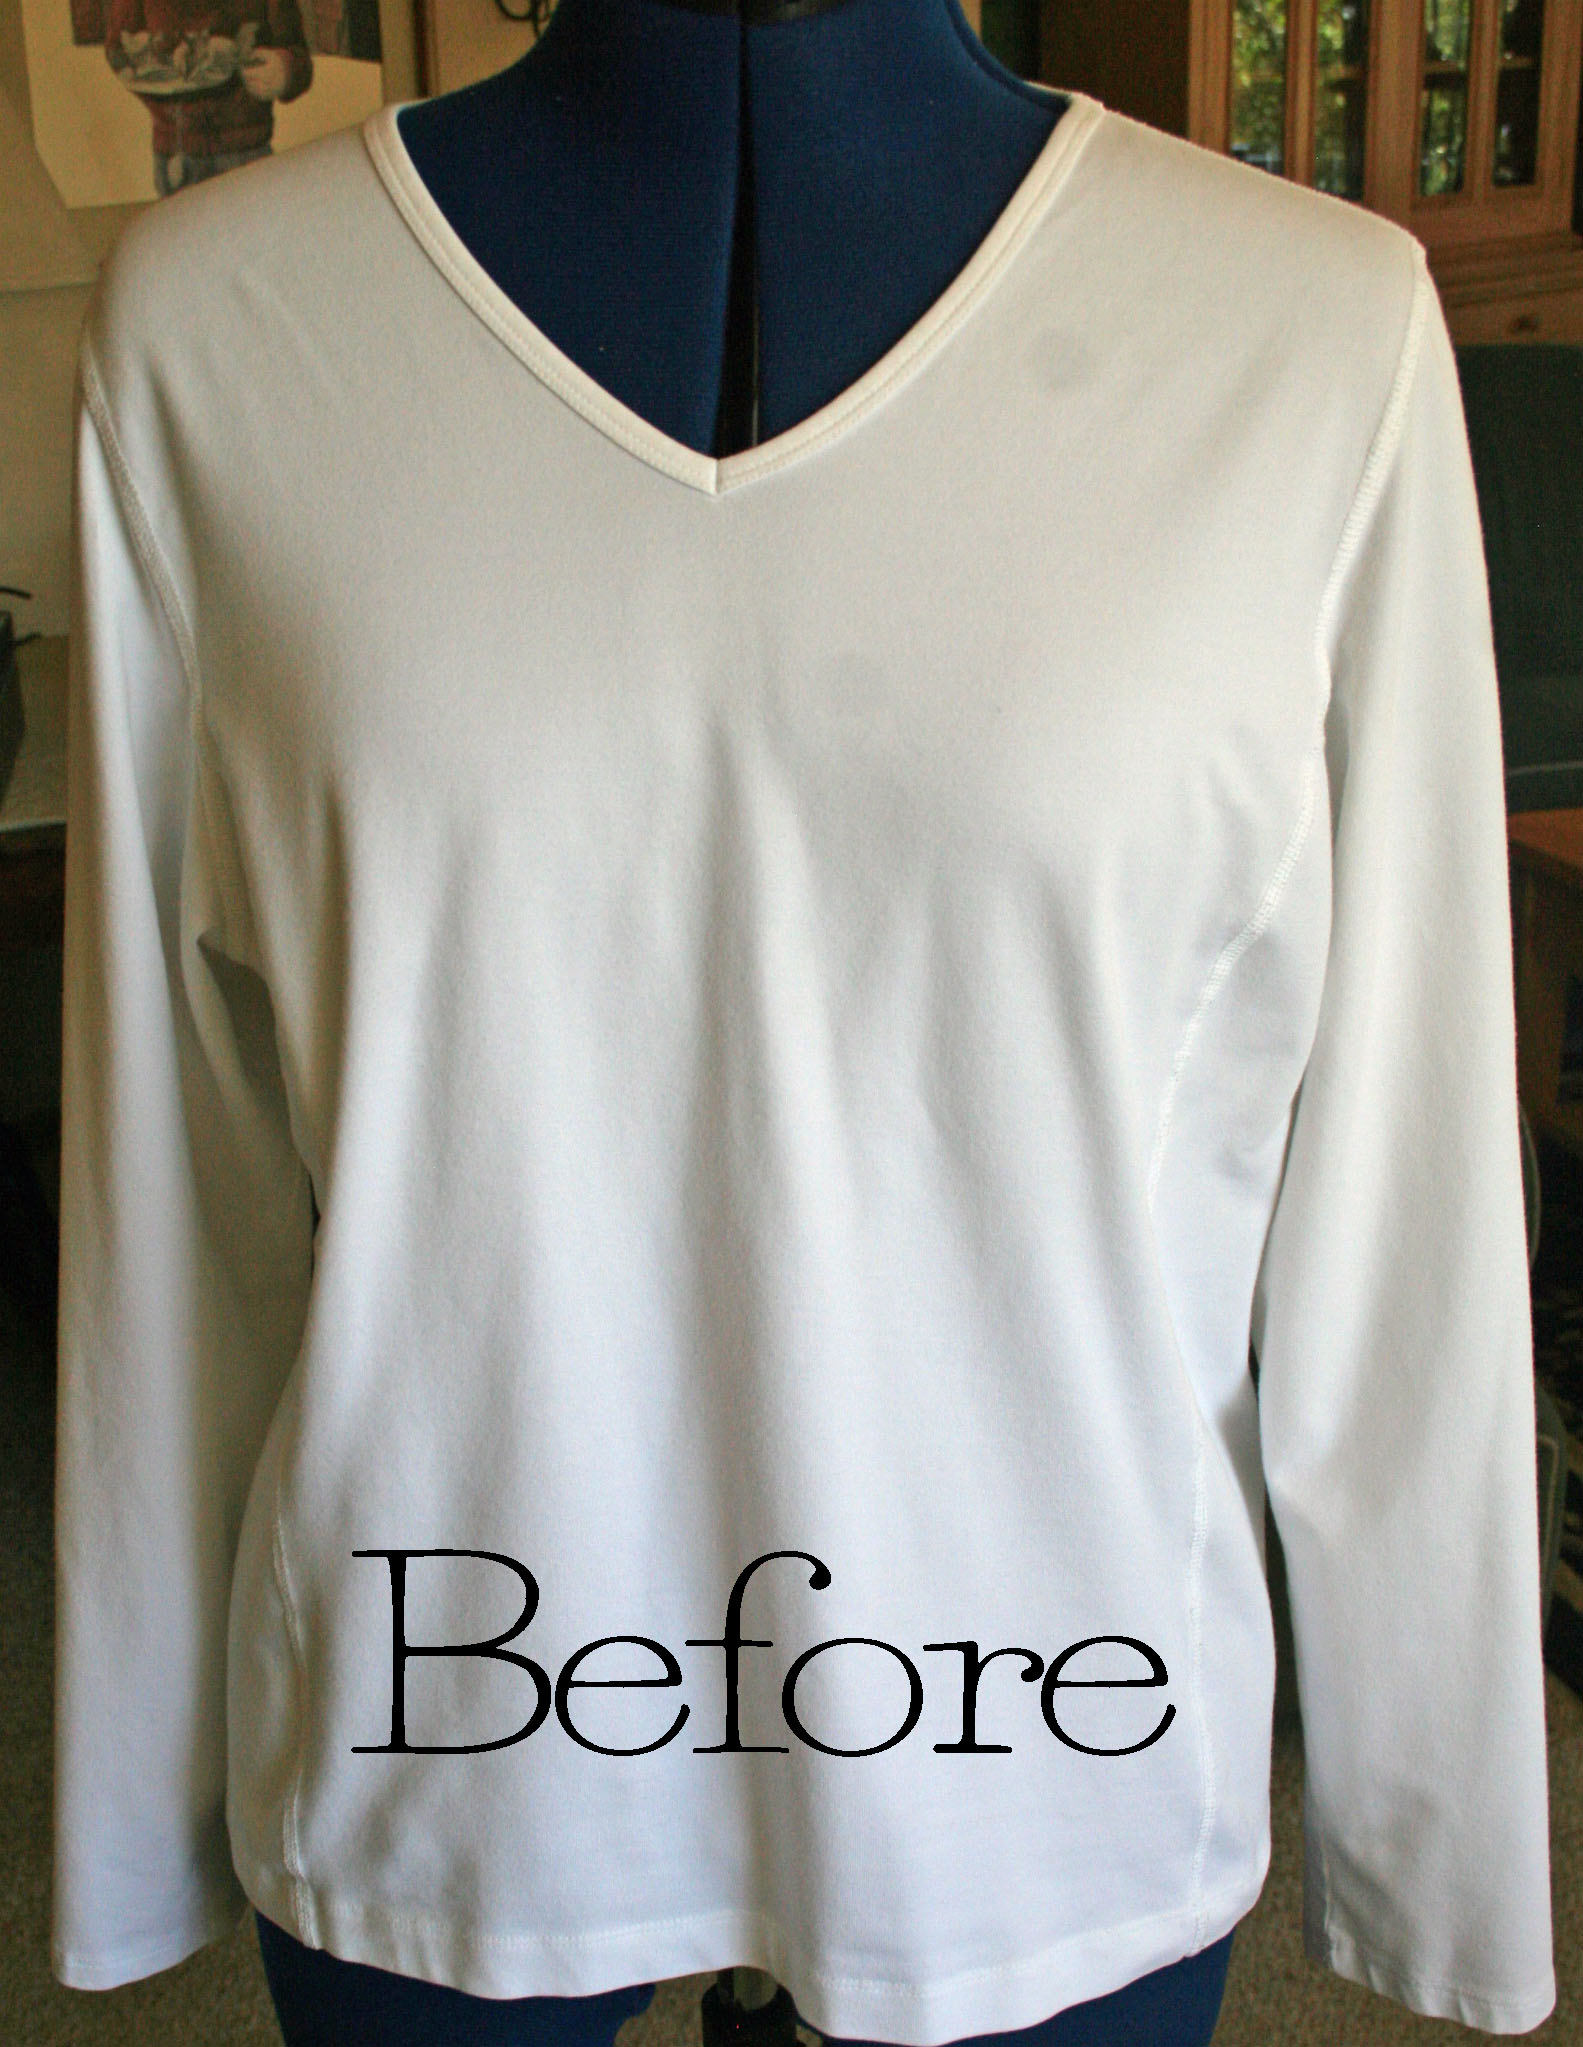 Diy Nautical Shirt With Fabric Paint The Renegade Seamstress